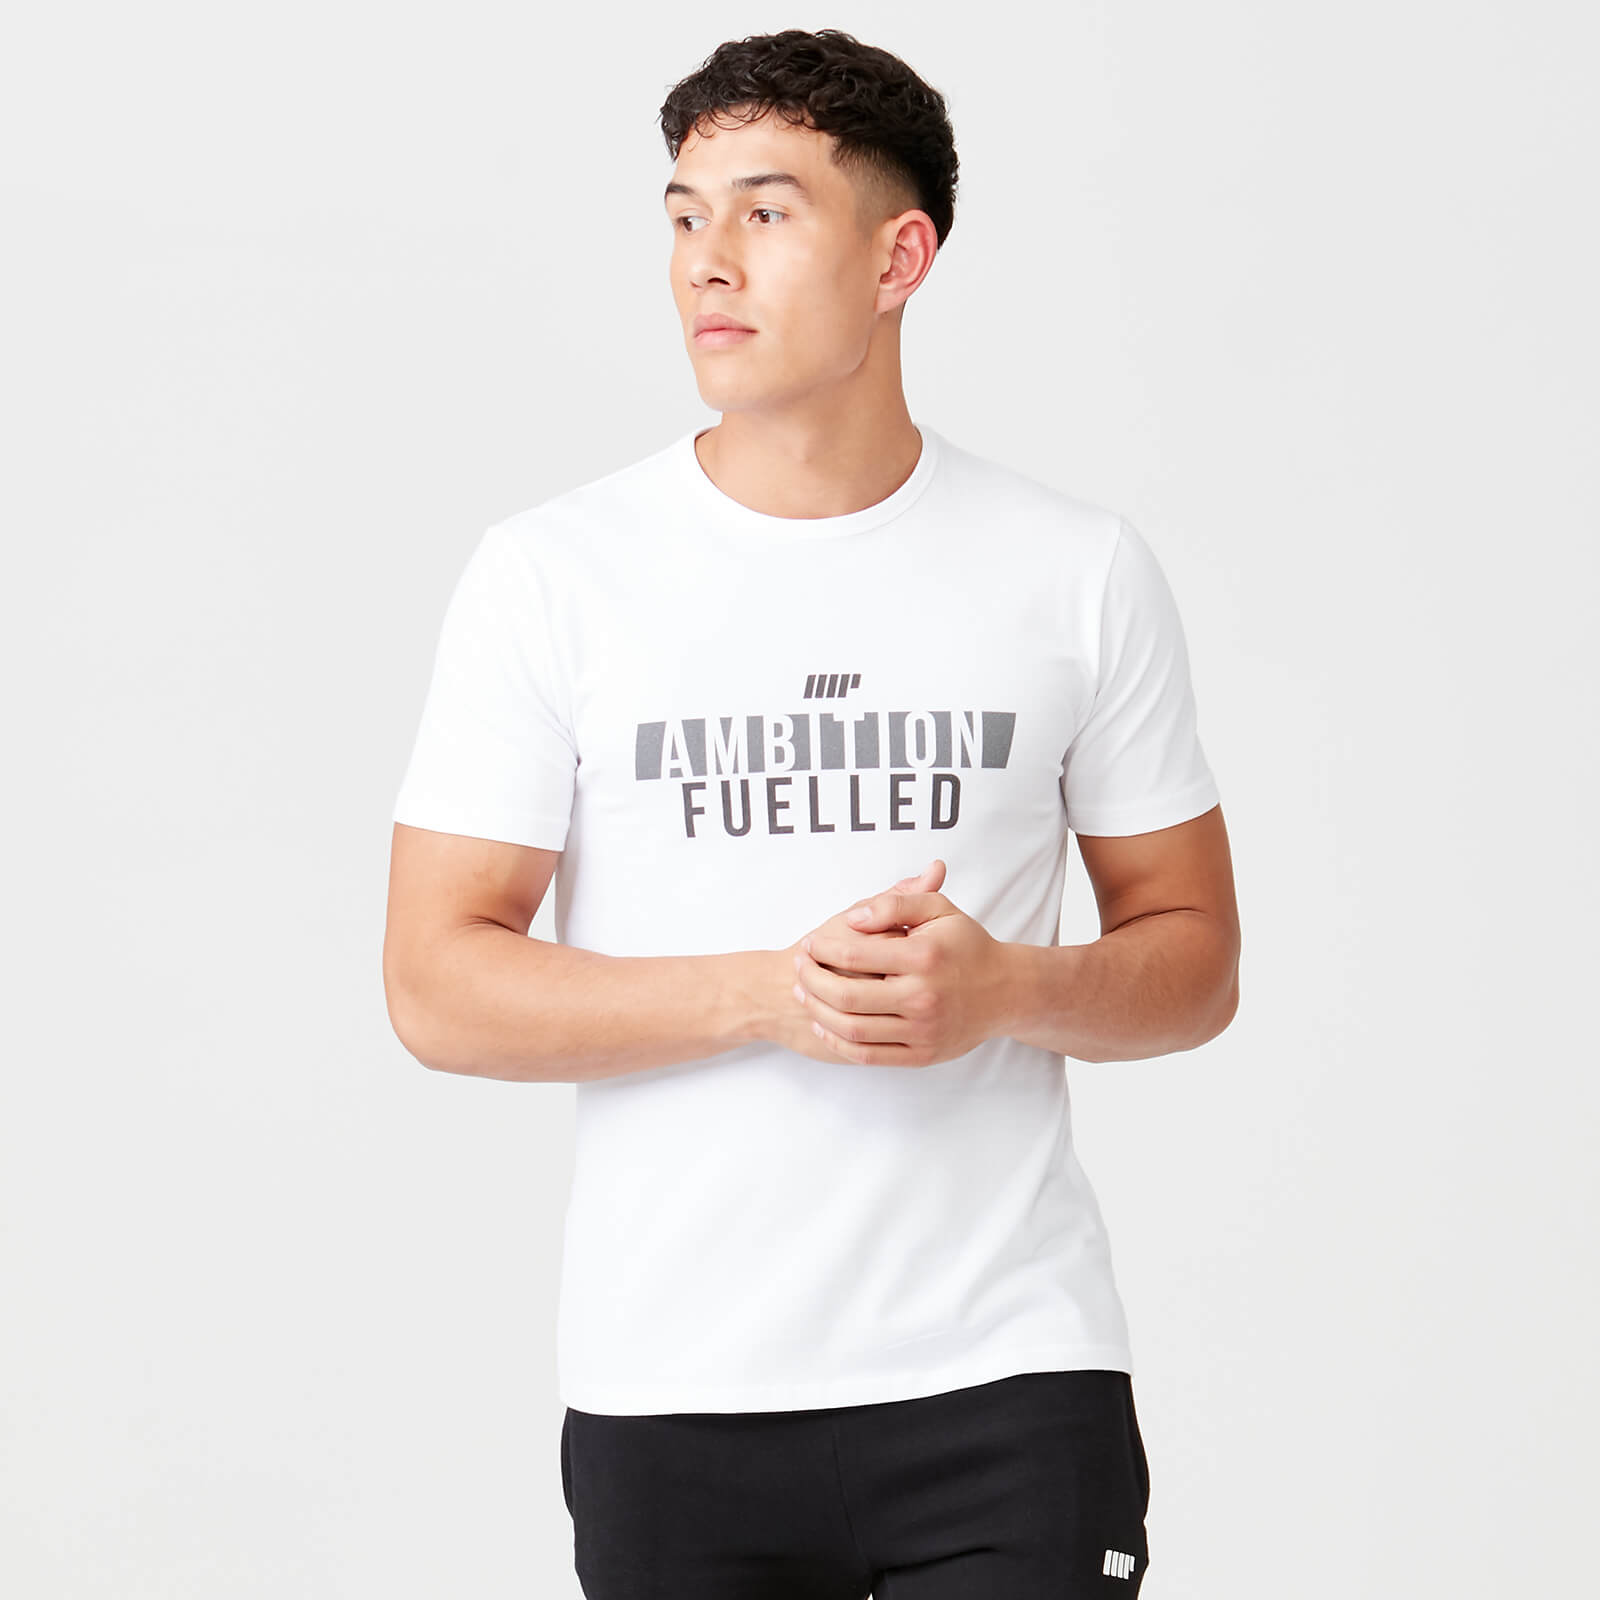 Ambition Fuelled T-Shirt - White - XS